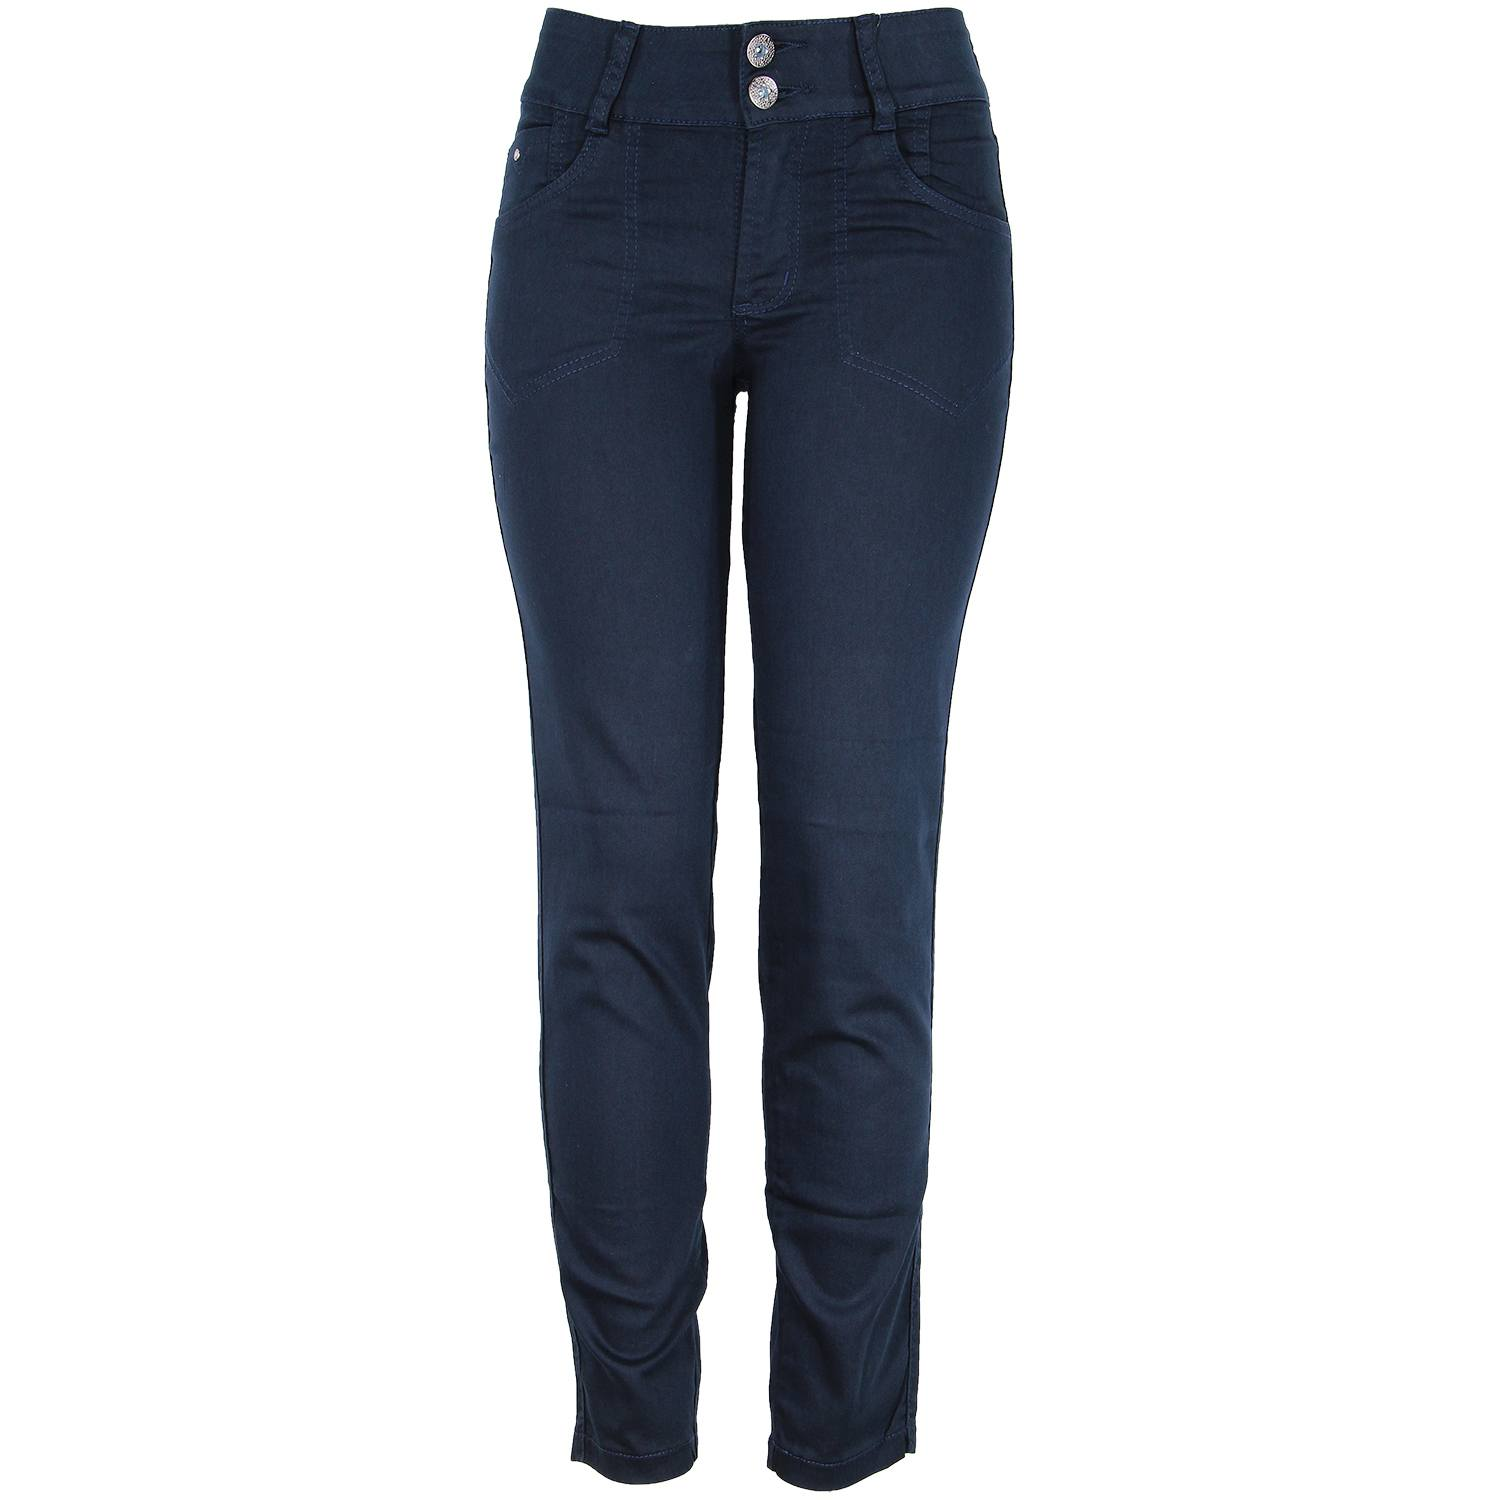 Cigarrete Eruption Jeans Color Andreia [52221AZ]